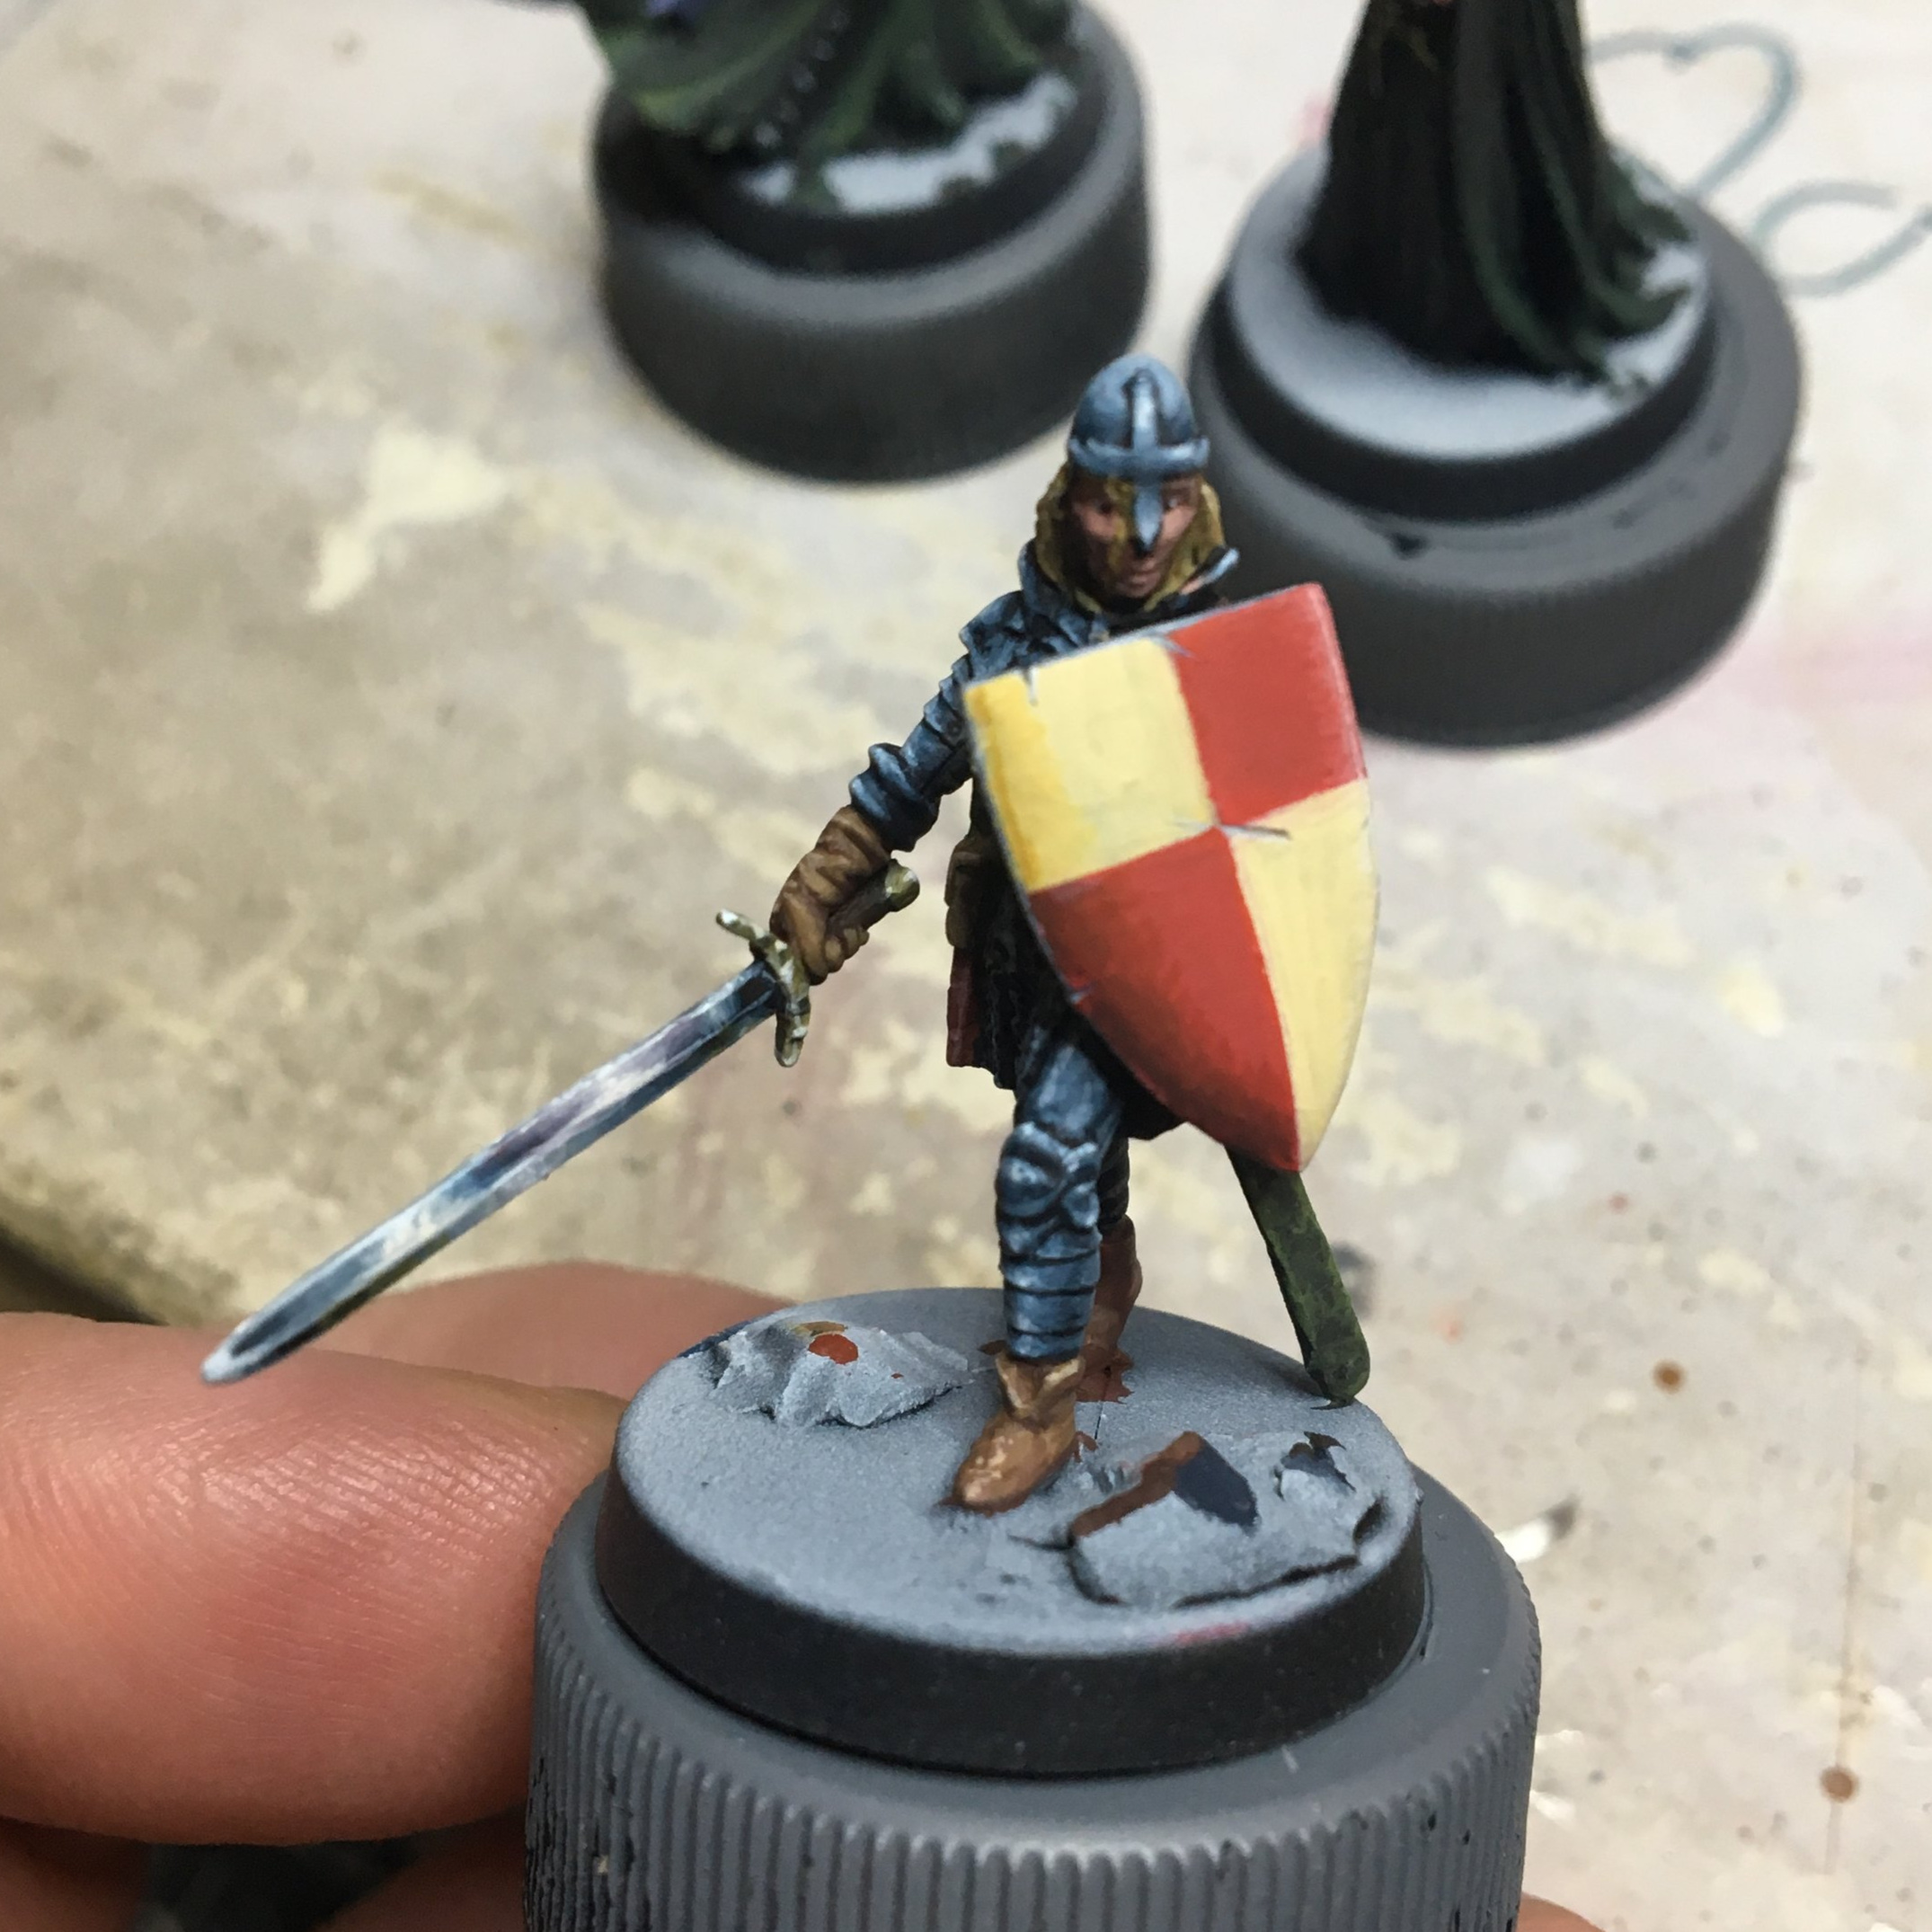 I'm pretty stoked on this guy, my first NMM armor!